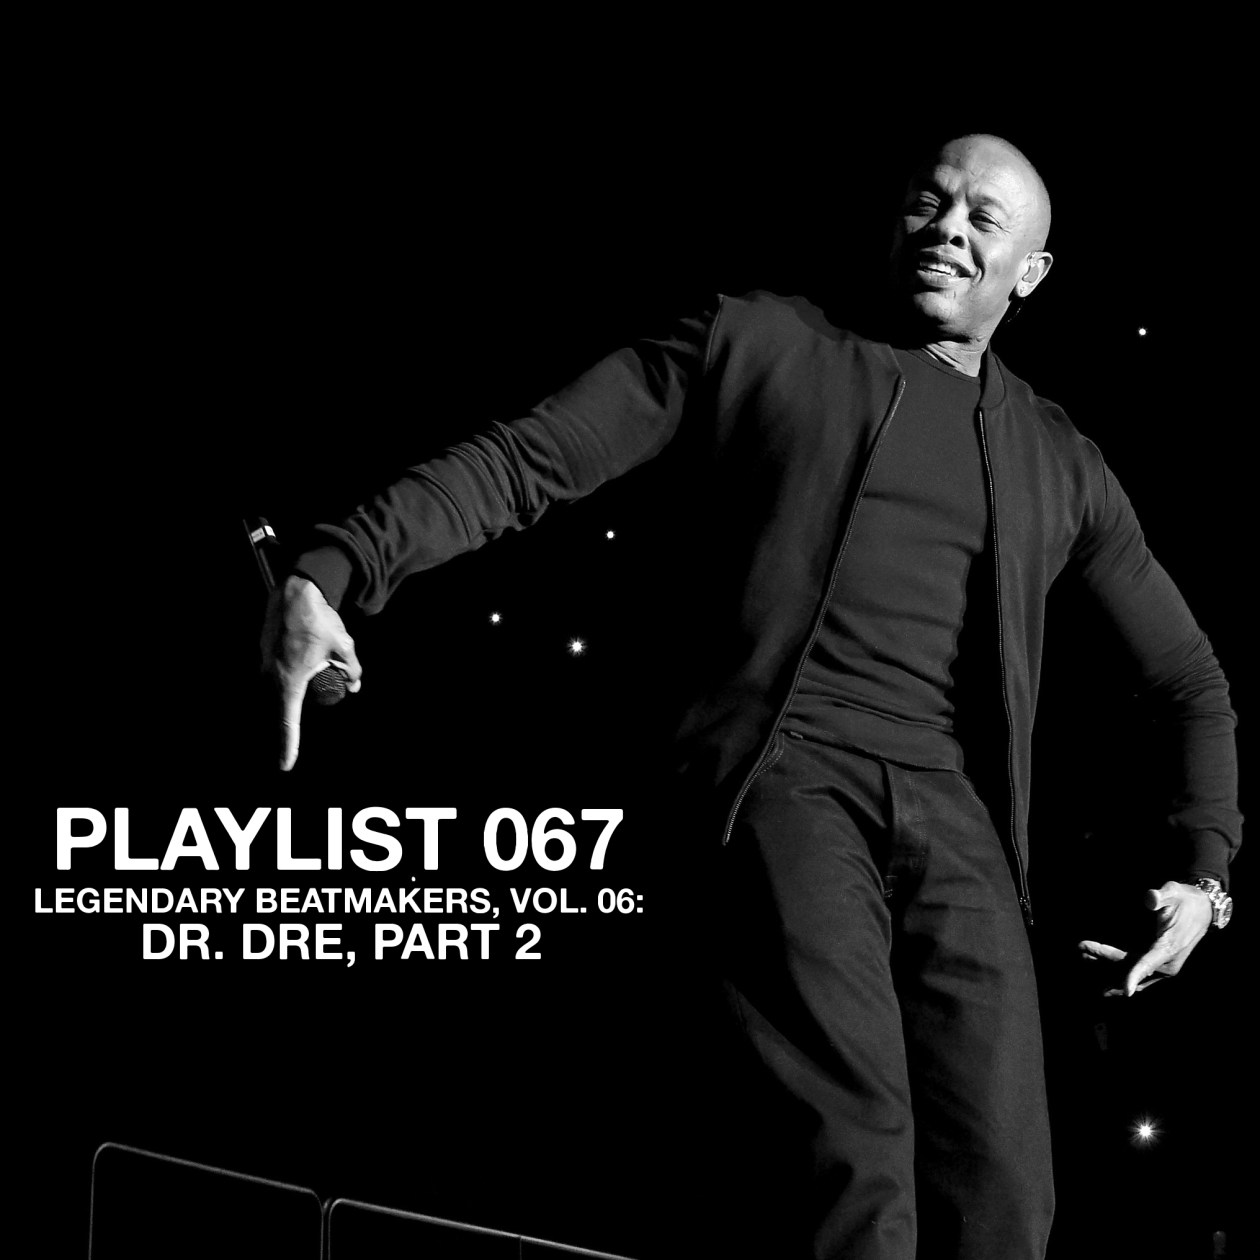 Playlist 066: Legendary Beatmakers, Vol. 06: Dr. Dre Part 2